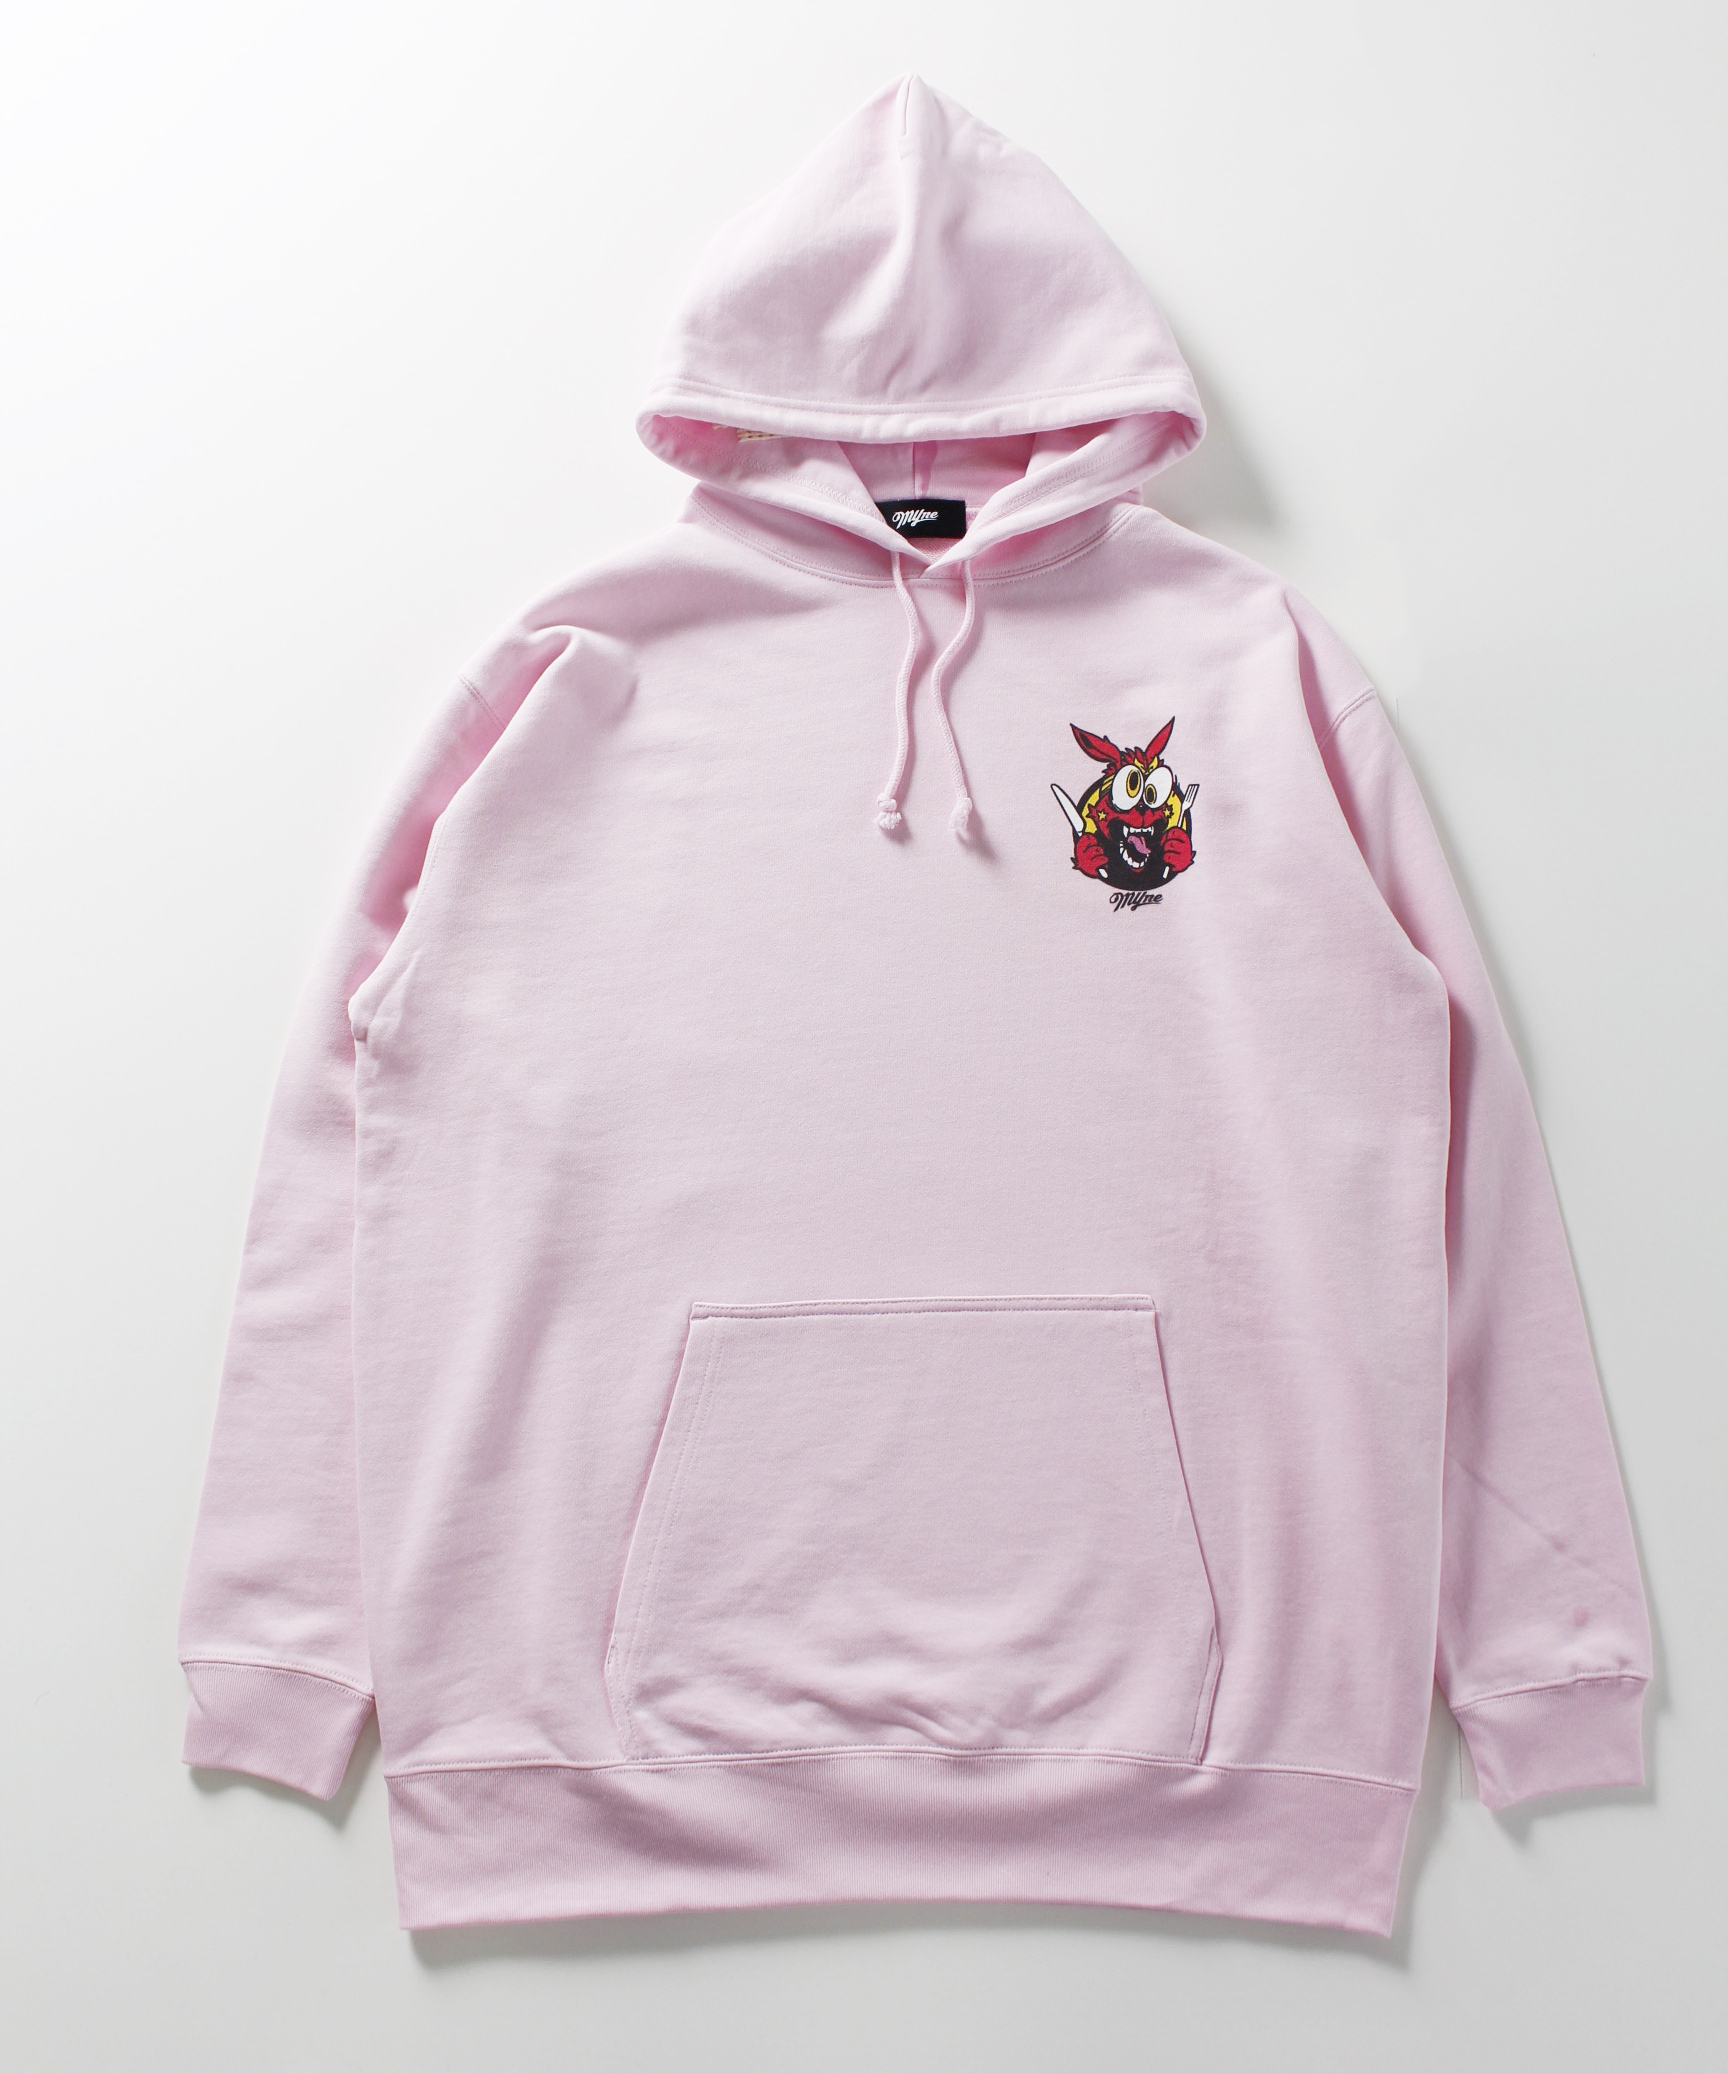 MYne CODEX 別注 Hoodie / PINK - 画像1